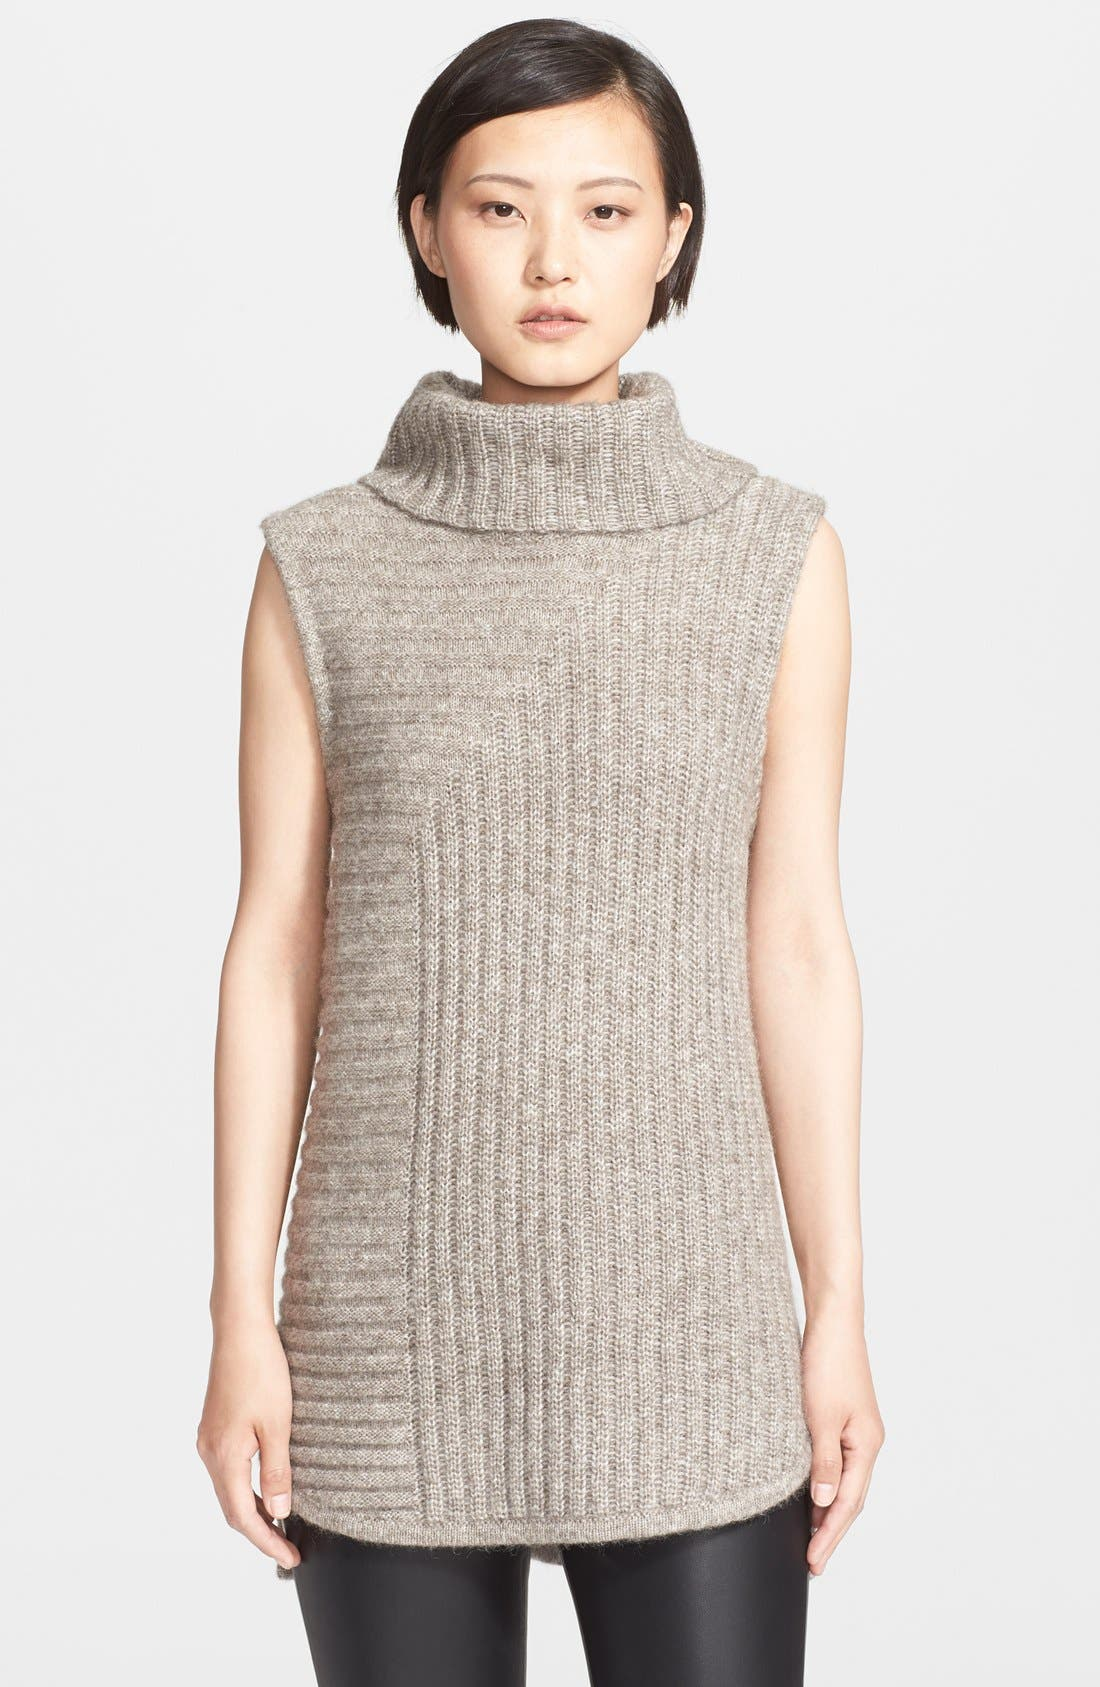 THEORY 'Beylor T' Ribbed Knit Turtleneck Tunic Vest, Main, color, 036